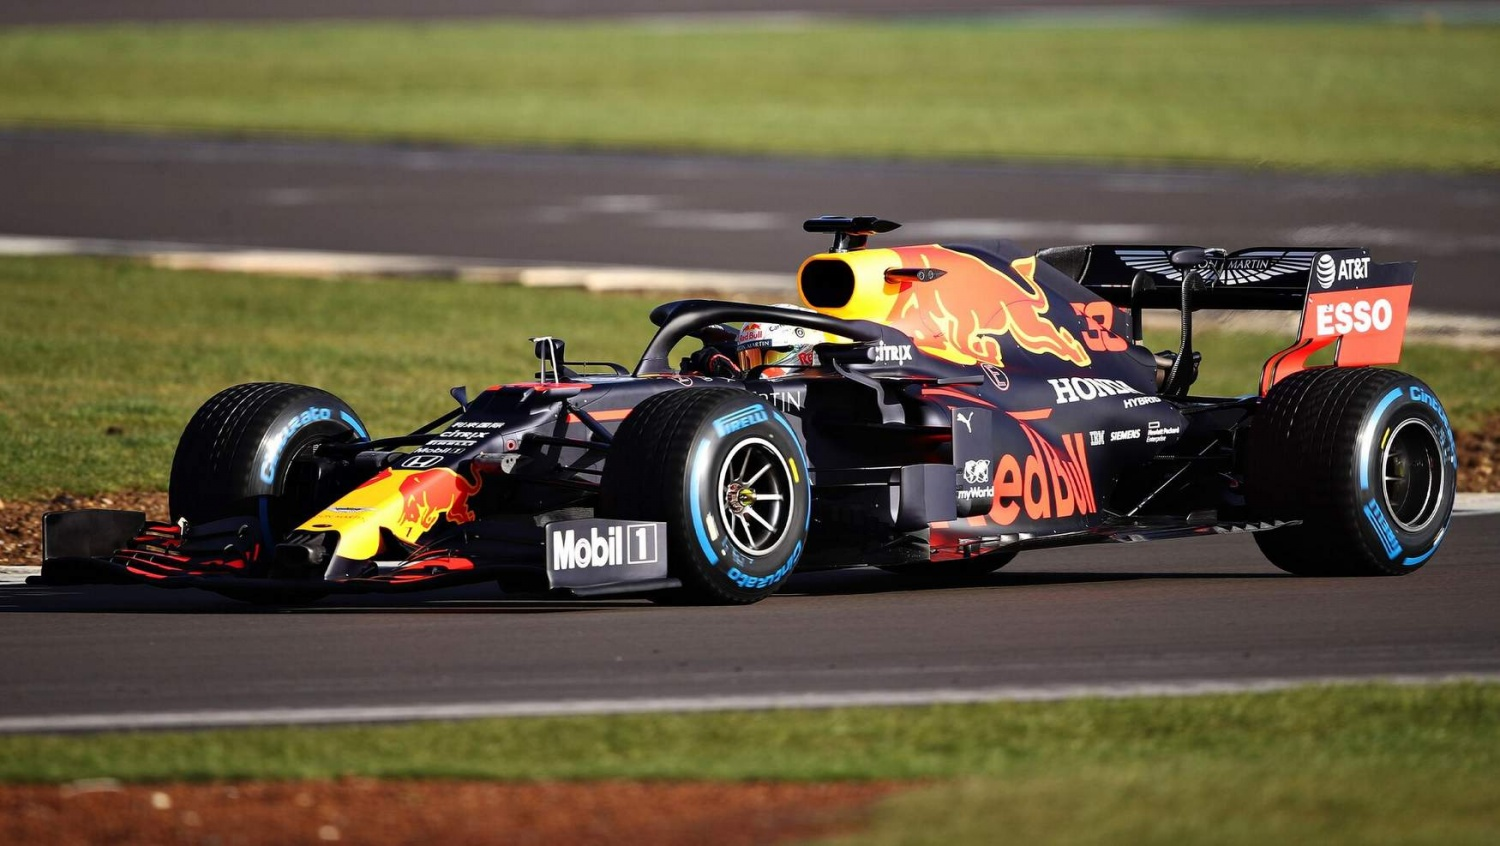 Red Bull RB16 out on track with Max Verstappen at the wheel